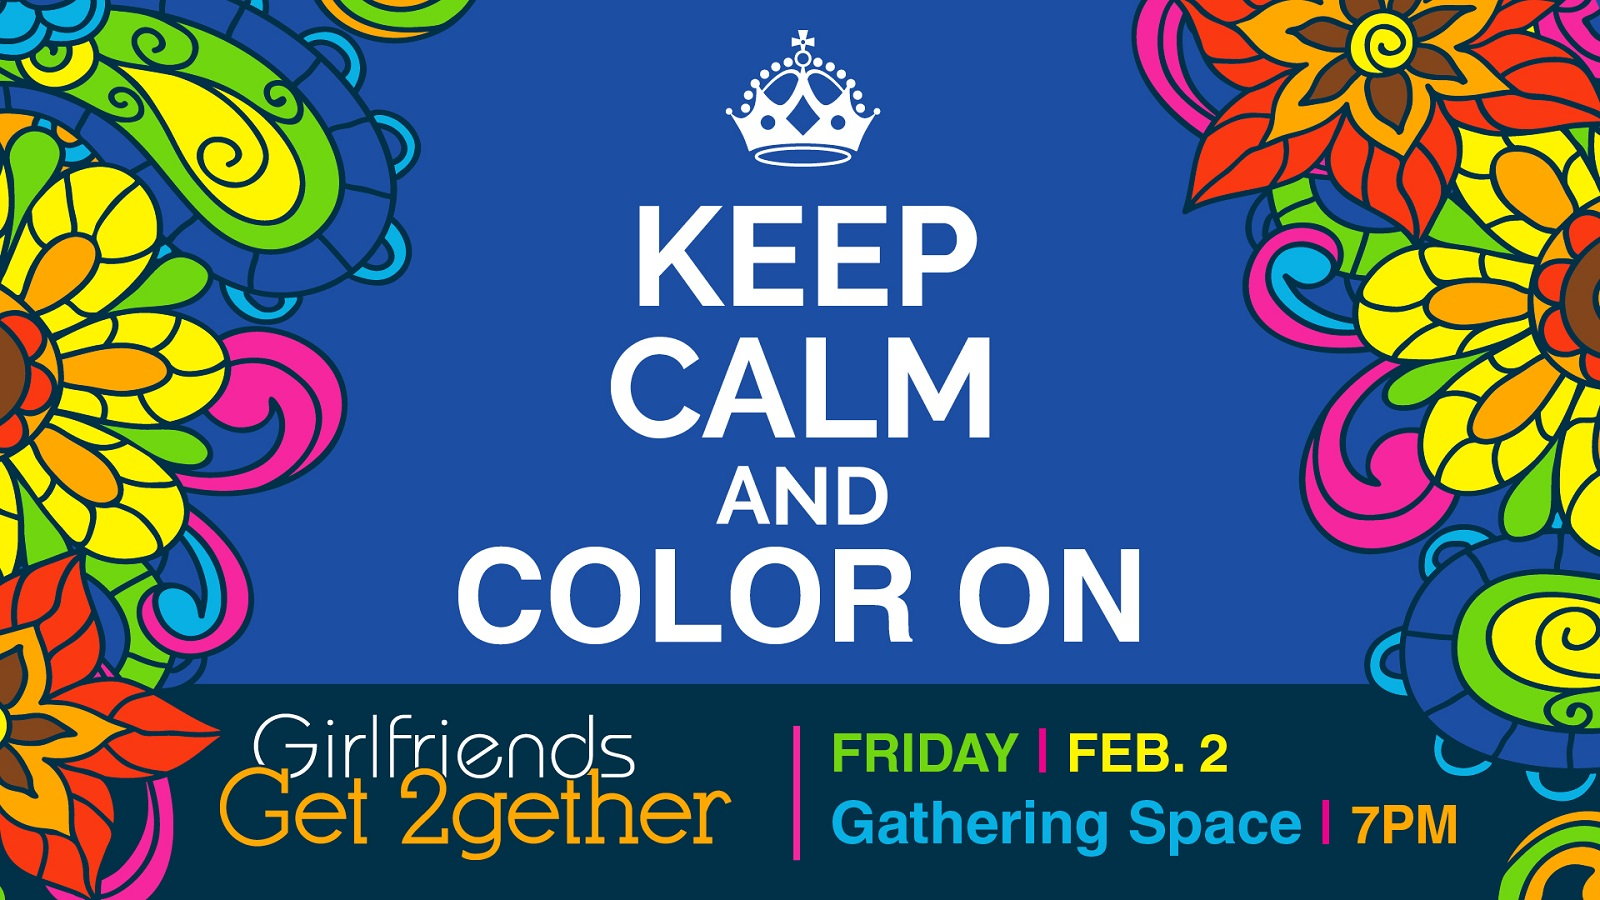 Keep Calm and Color On!